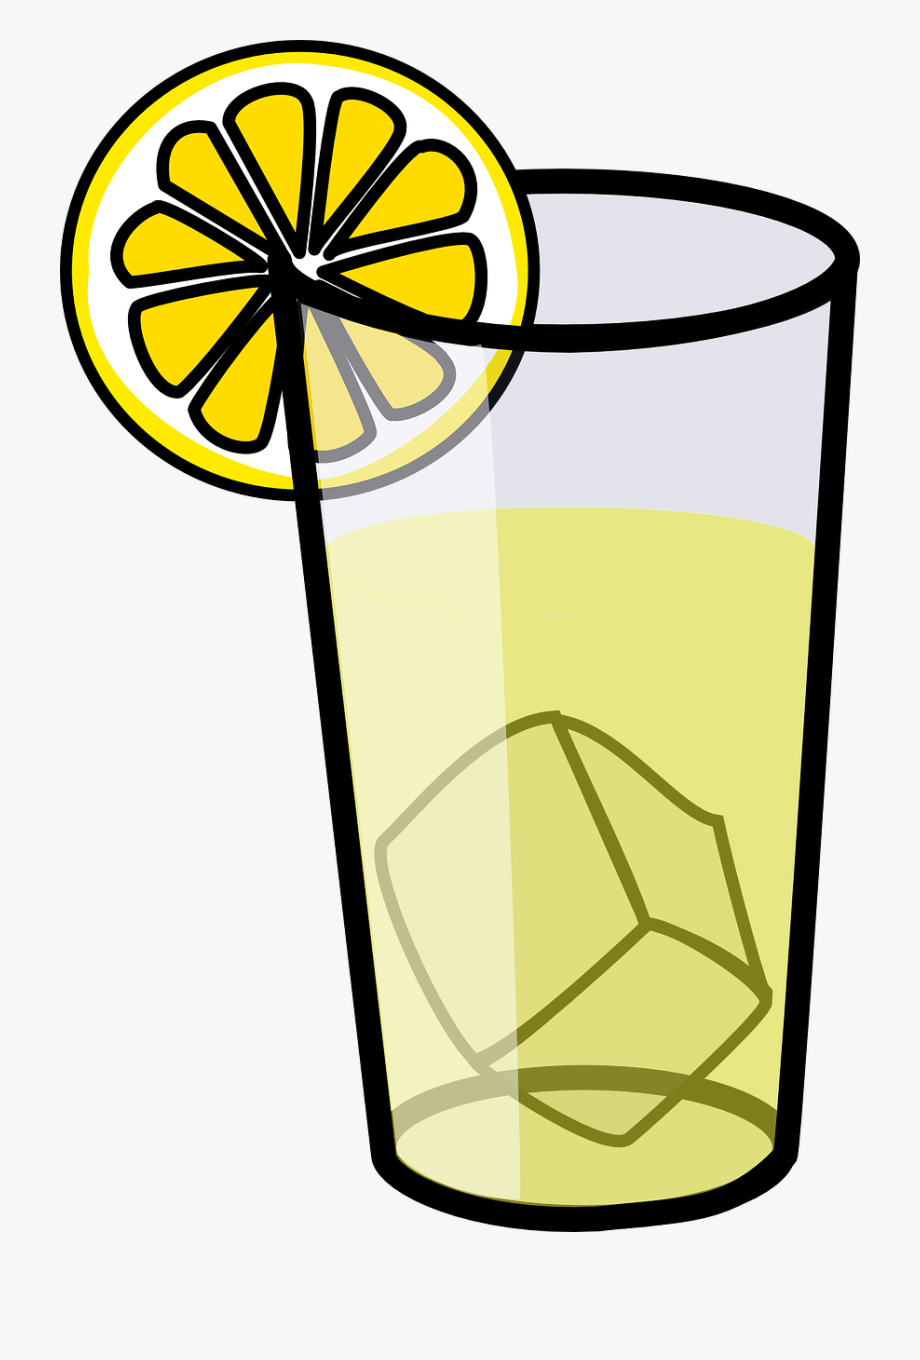 Lemonade Glass Drink Beverage Png Image.